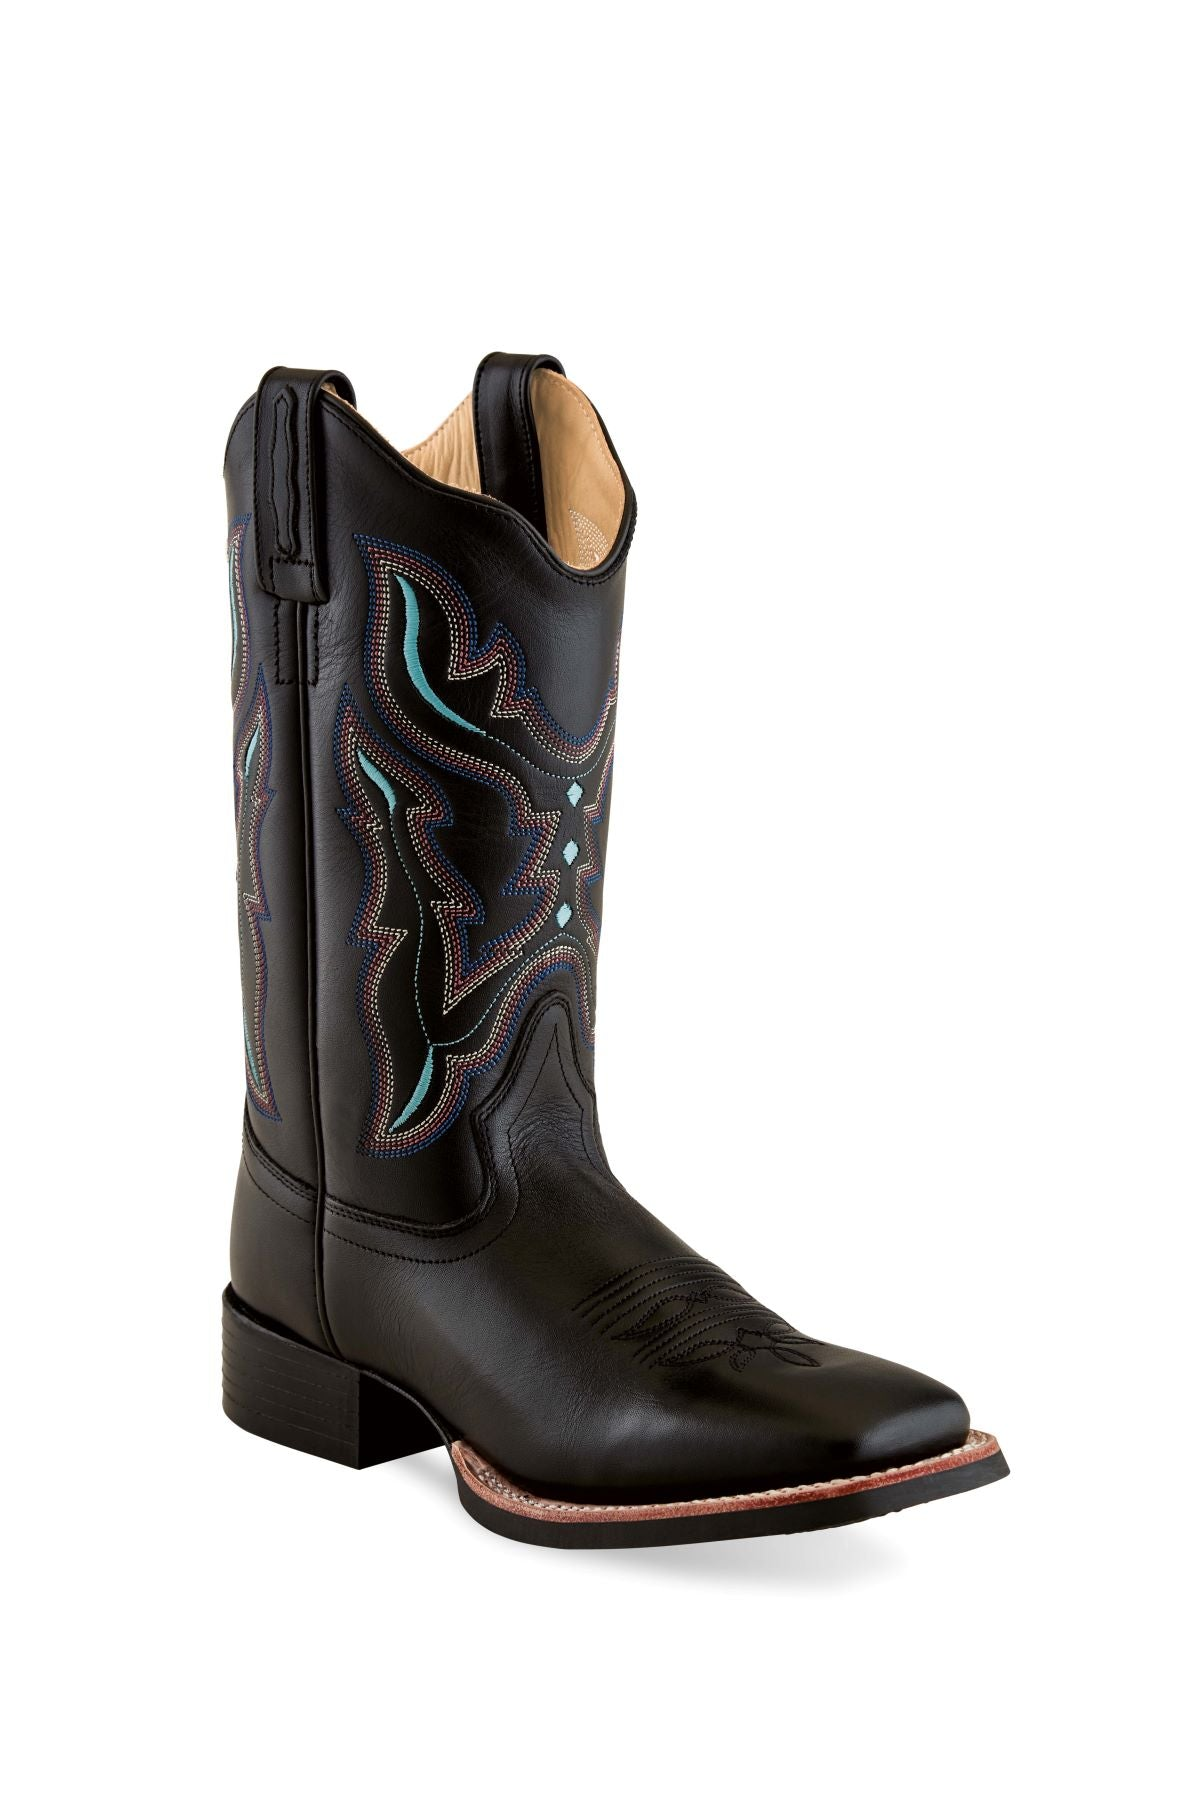 'Old West' Women's 11